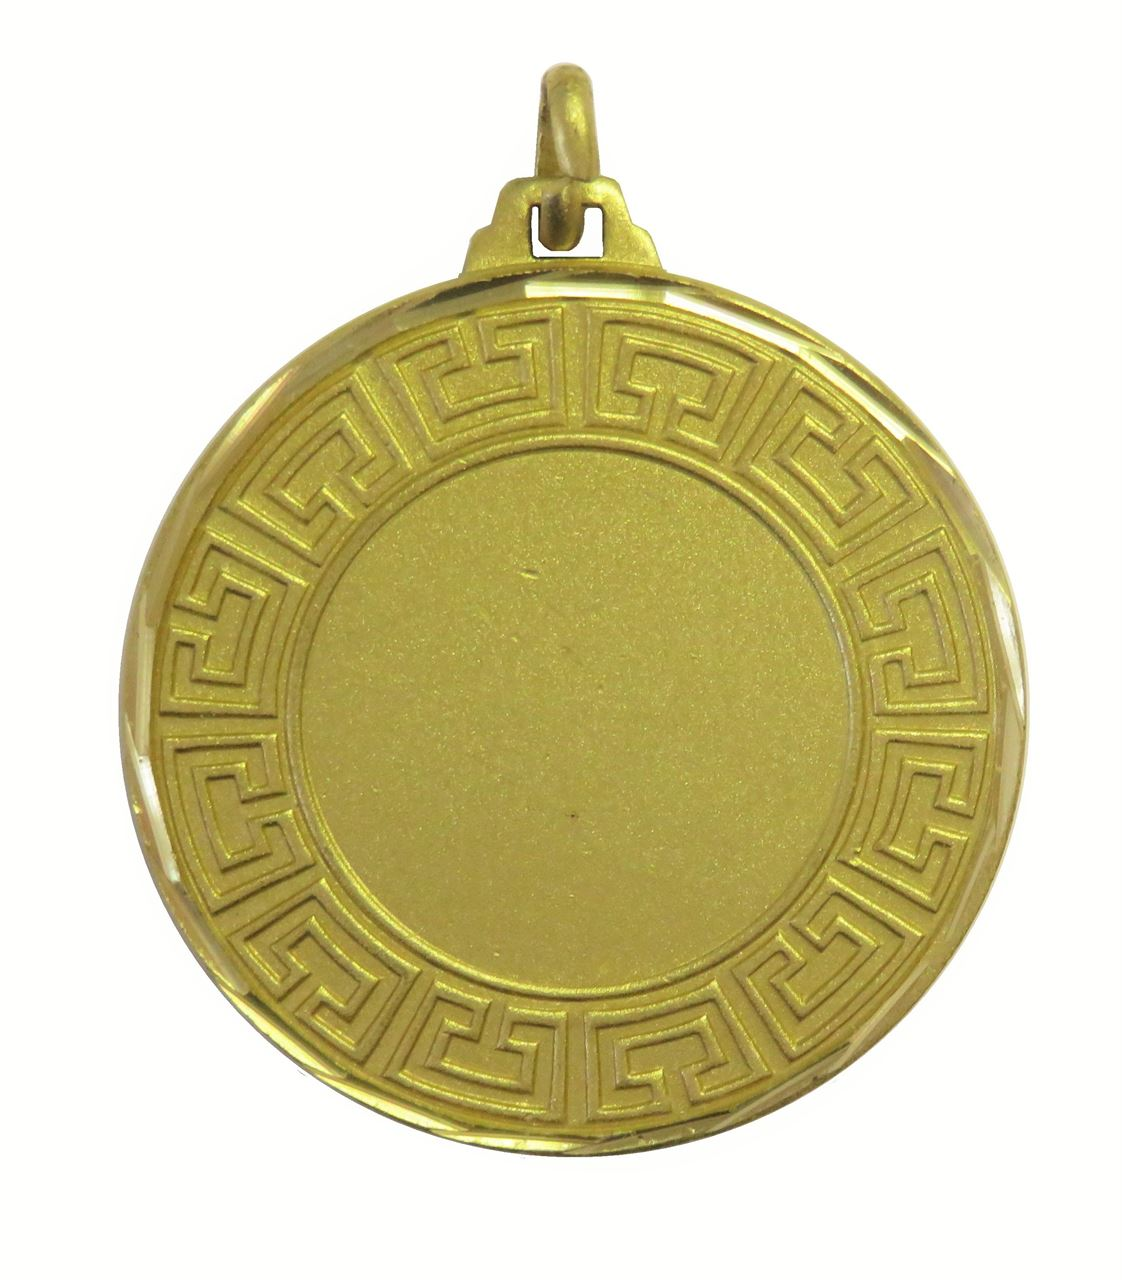 Gold Faceted Athena Medal (sizes: 42mm) - 5555F